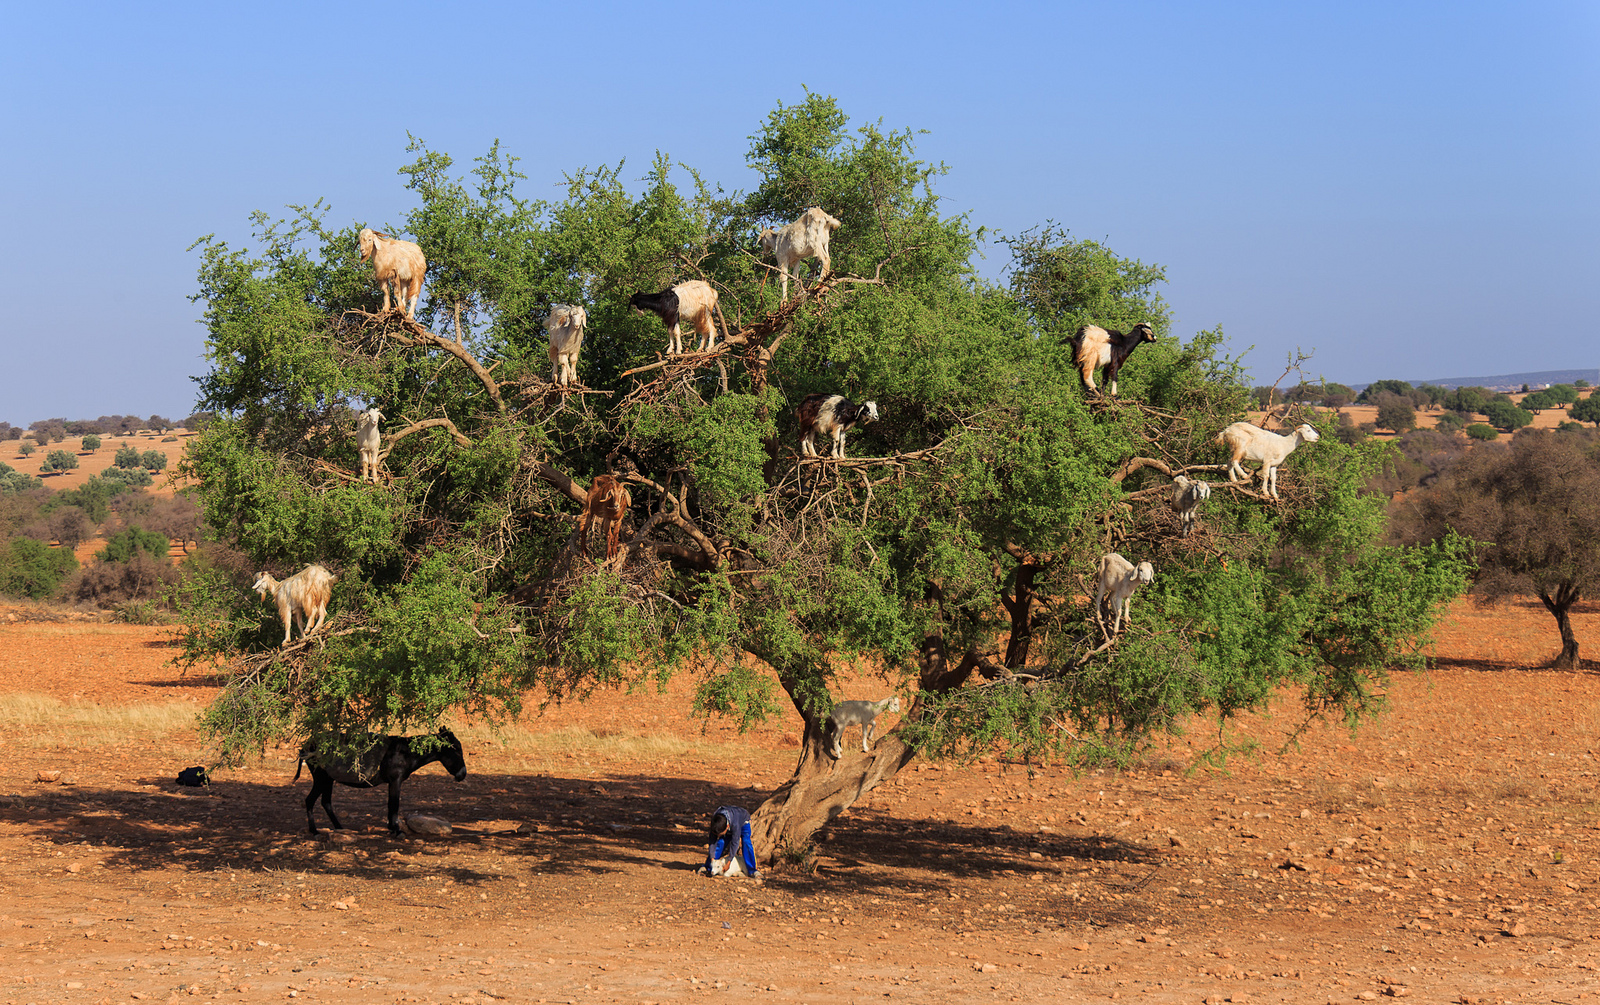 Source: http://whenonearth.net/wp-content/uploads/2013/11/tree-climbing-goats-morocco-woe1.jpg